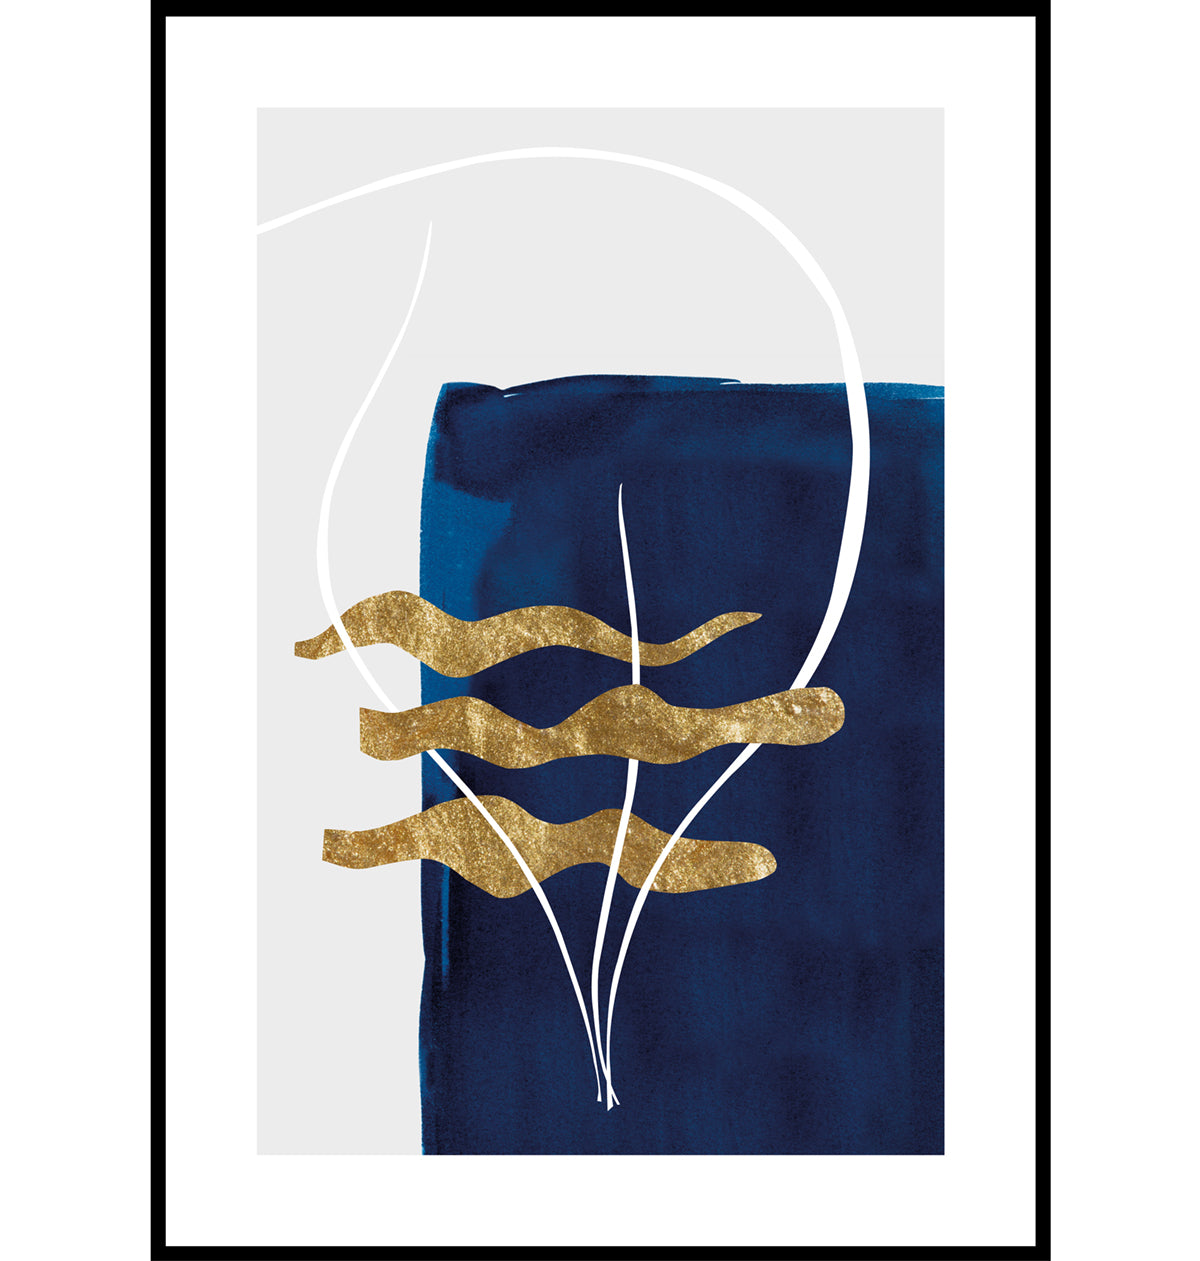 Blue and gold abstract seaweed wall art print